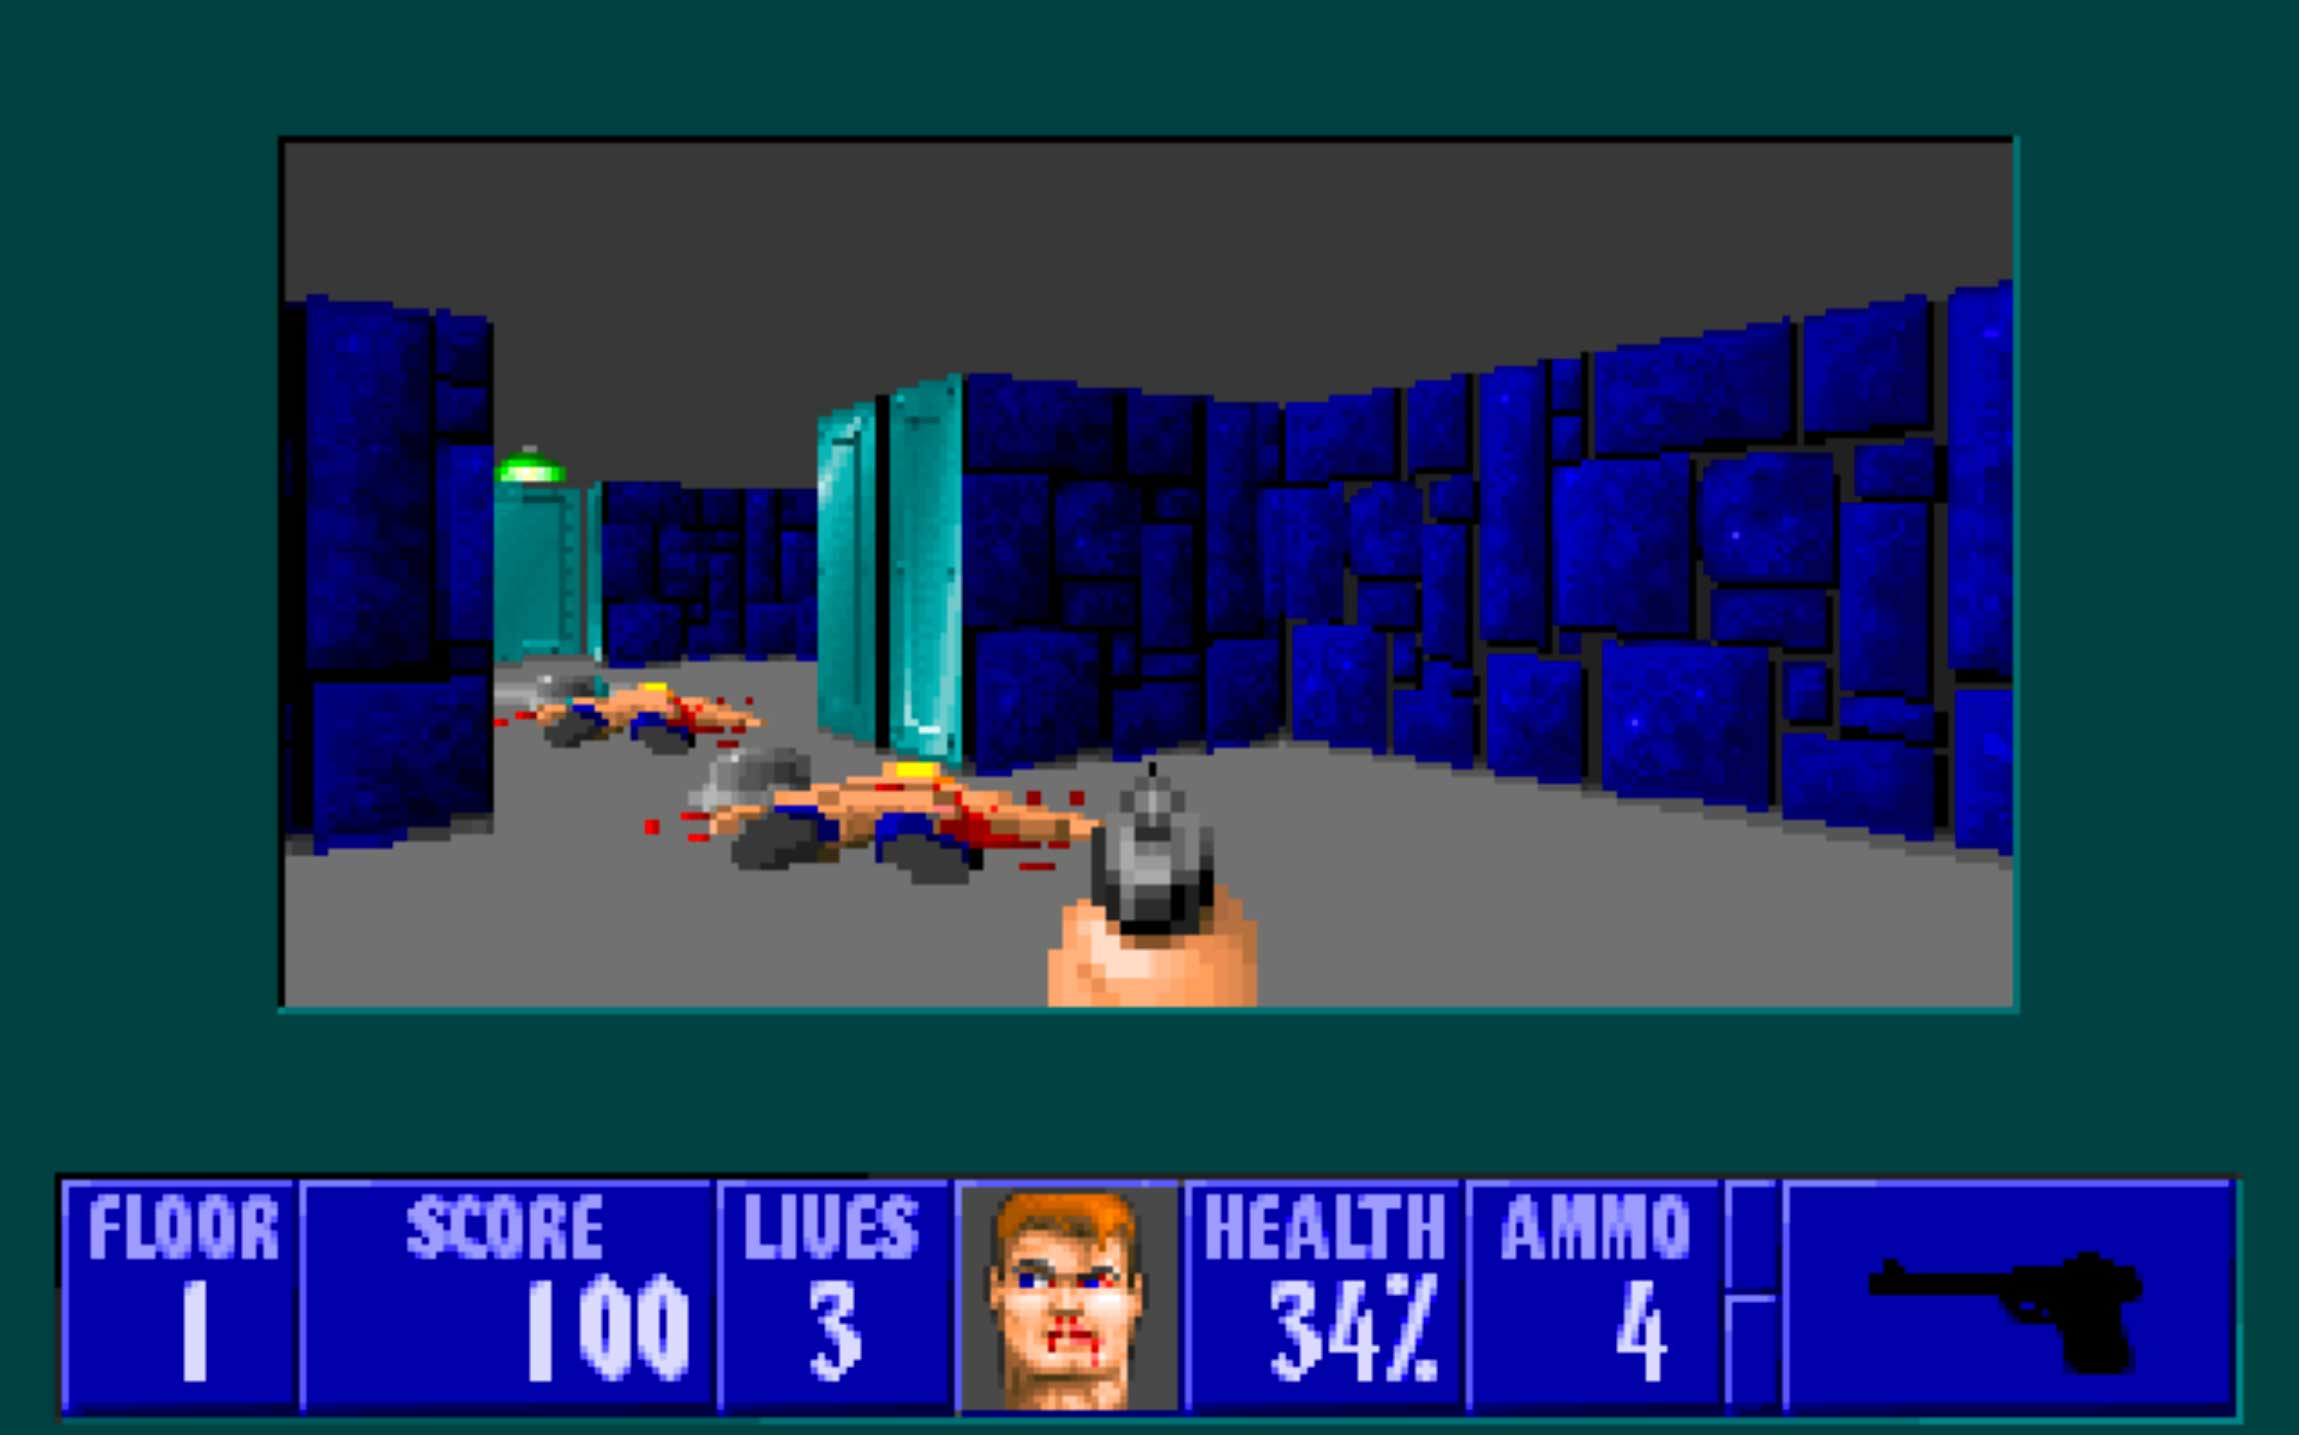 "<a href=""https://archive.org/details/msdos_Wolfenstein_3D_1992"" target=""_blank""><strong>Wolfenstein 3D (1992)</strong> </a>                                                                      The precursor to Doom, Quake, and many of the gore-fests roaring across consoles today, this 1992 first-person shooter has you, as allied spy B.J. Blazkowicz, racing to escape the Nazi's clutches."